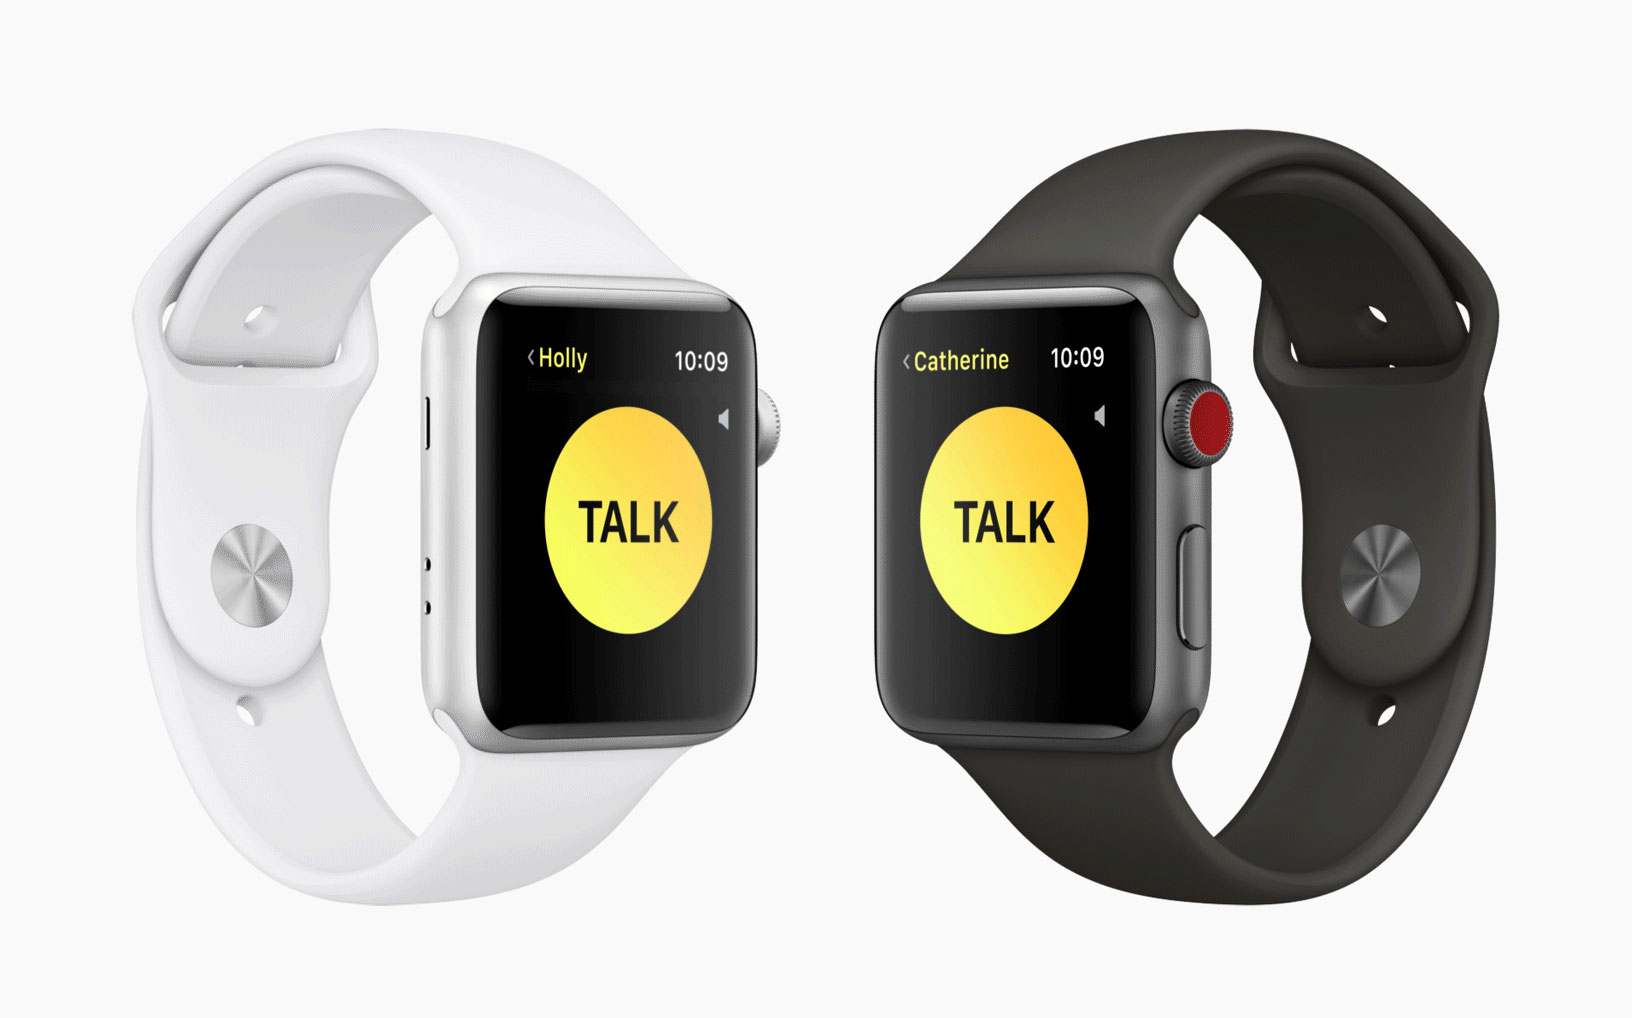 Aplicación de Walkie-Talkie en el Apple Watch